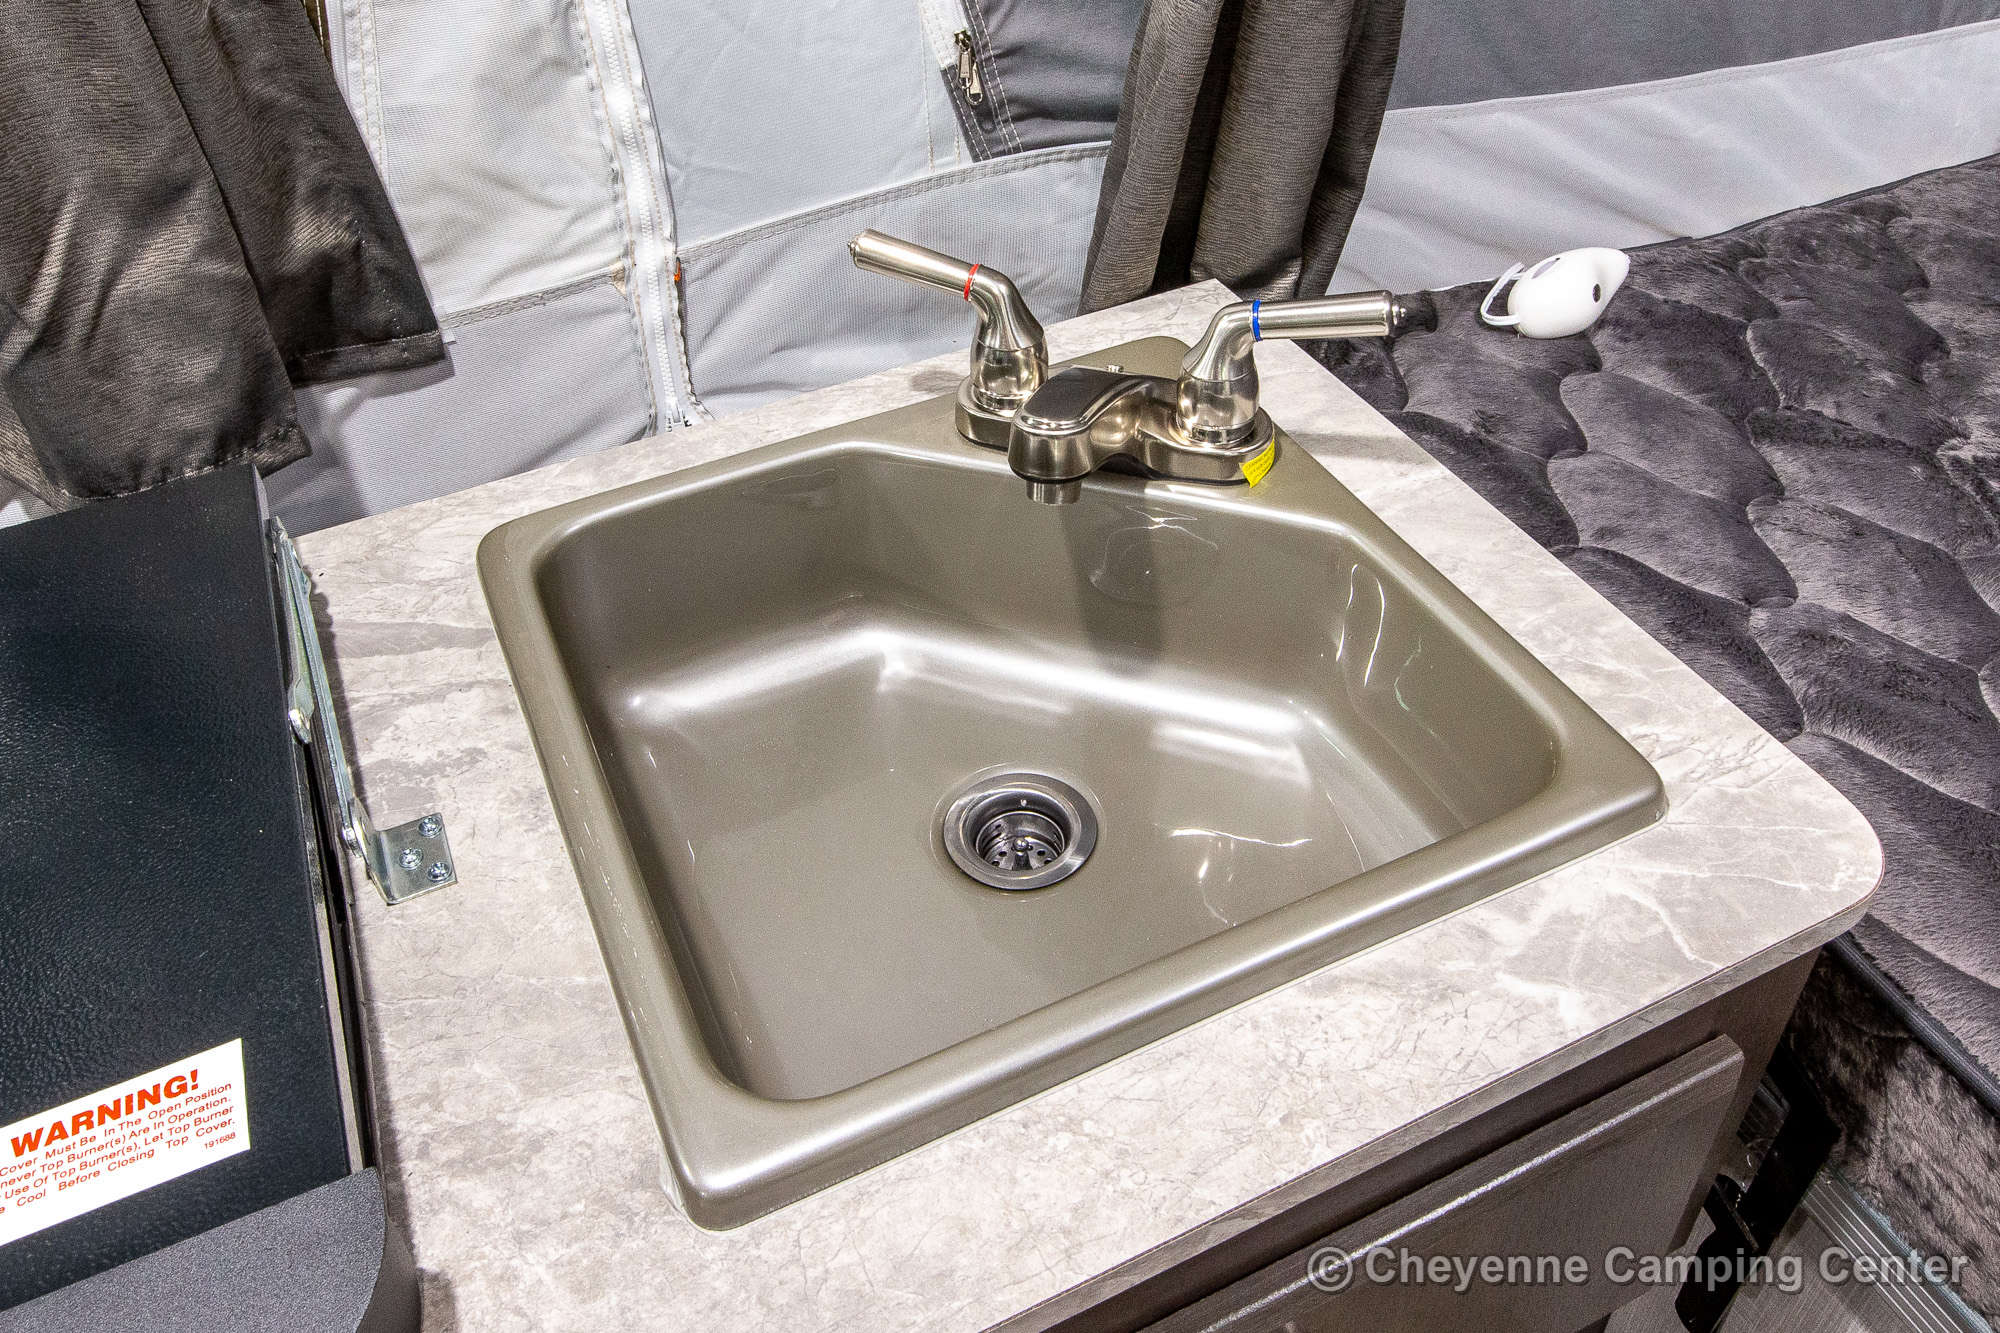 2022 Forest River Flagstaff Sports Enthusiast 228SE Folding Camper Interior Image